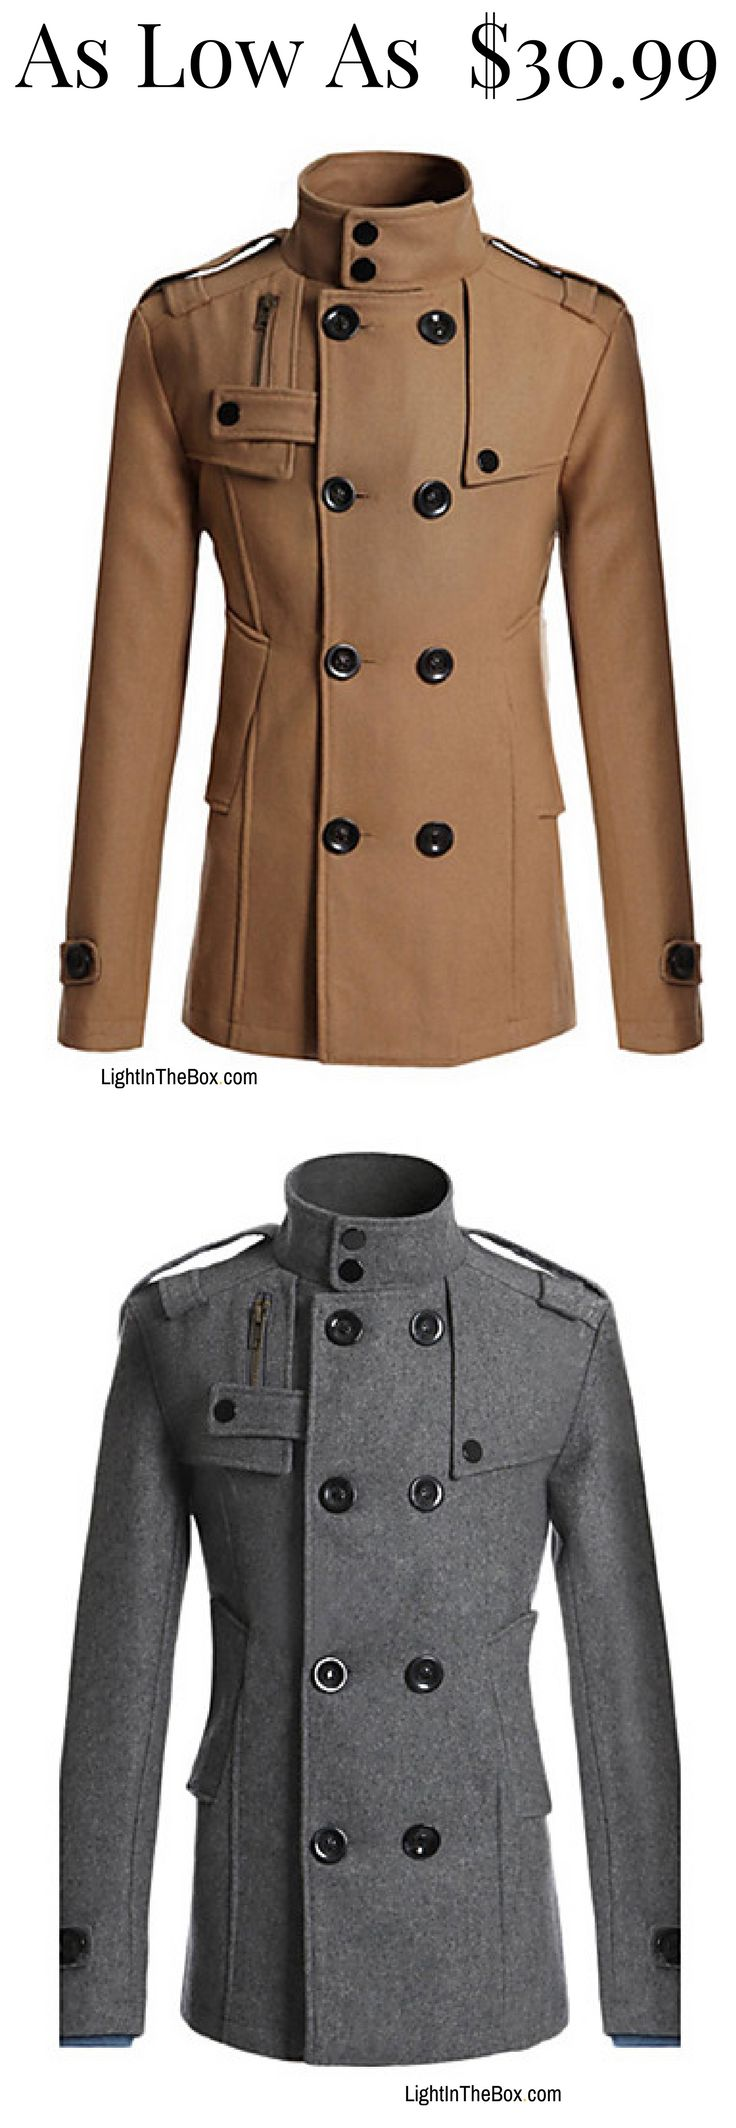 Casual camel button breast men coat for any occasion. Like it? click on the picture to shop it in brown, black and navy blue colours at just $30.99. #Fashion